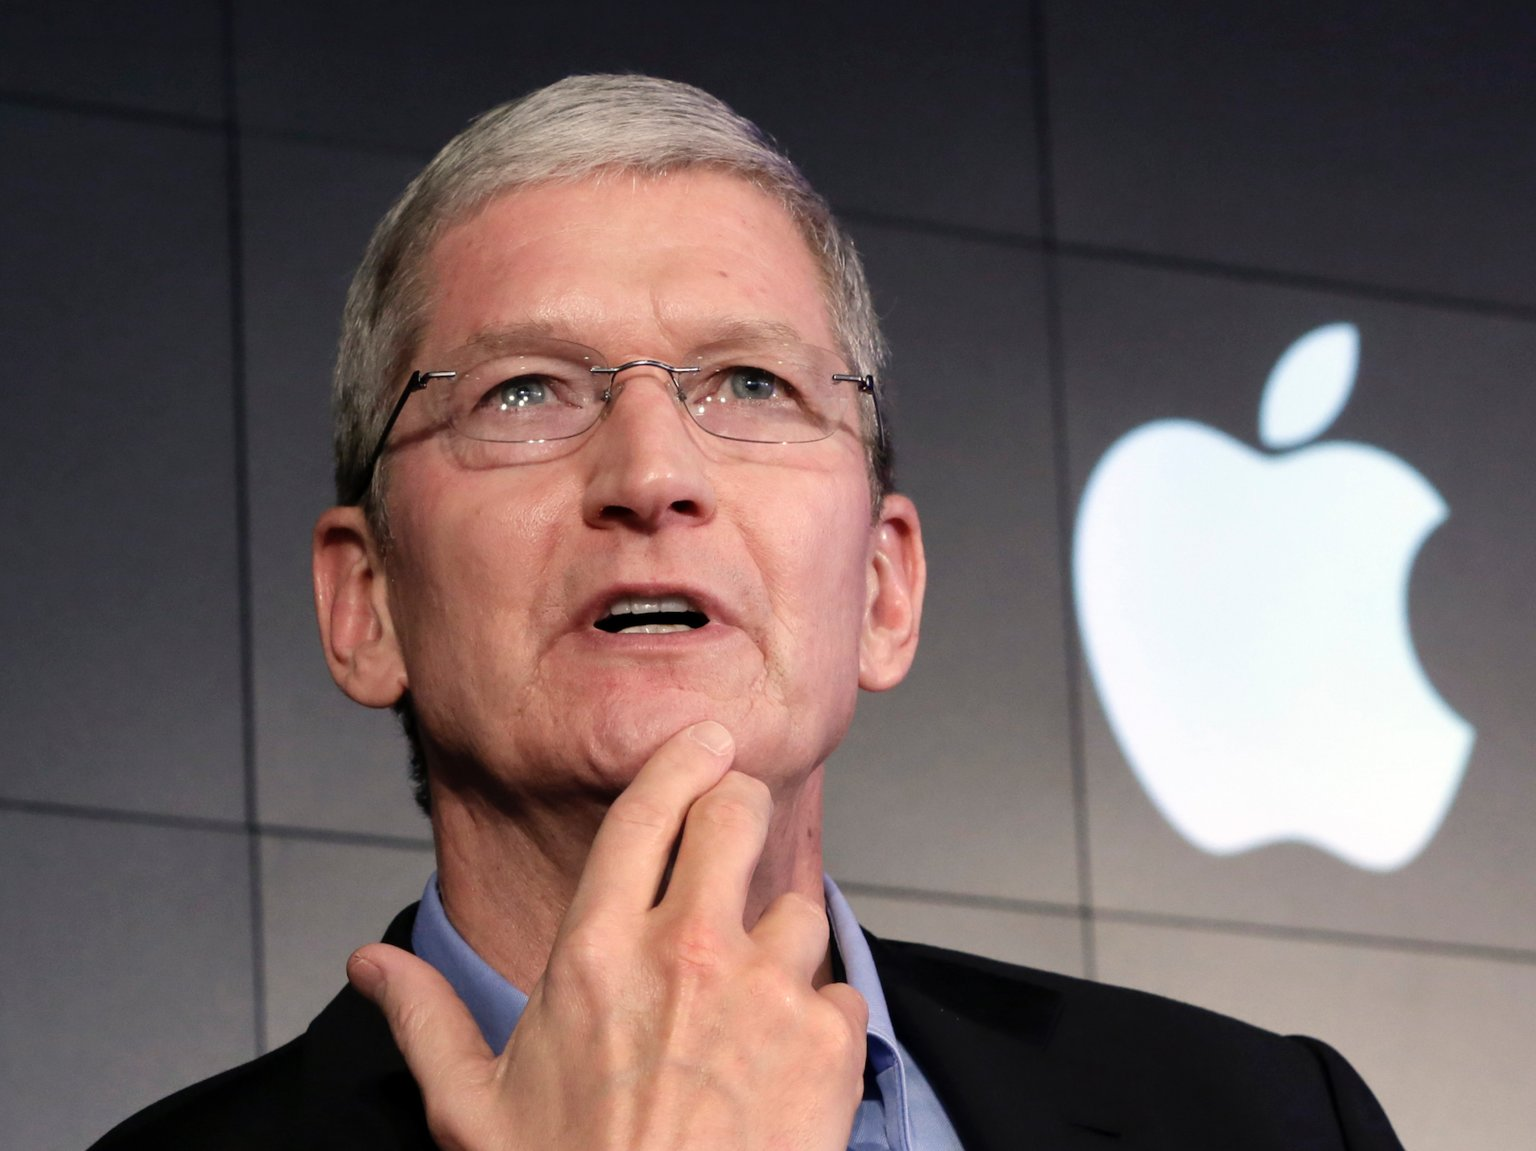 Apple is dropping $1 billion on a huge new campus in Austin, Texas